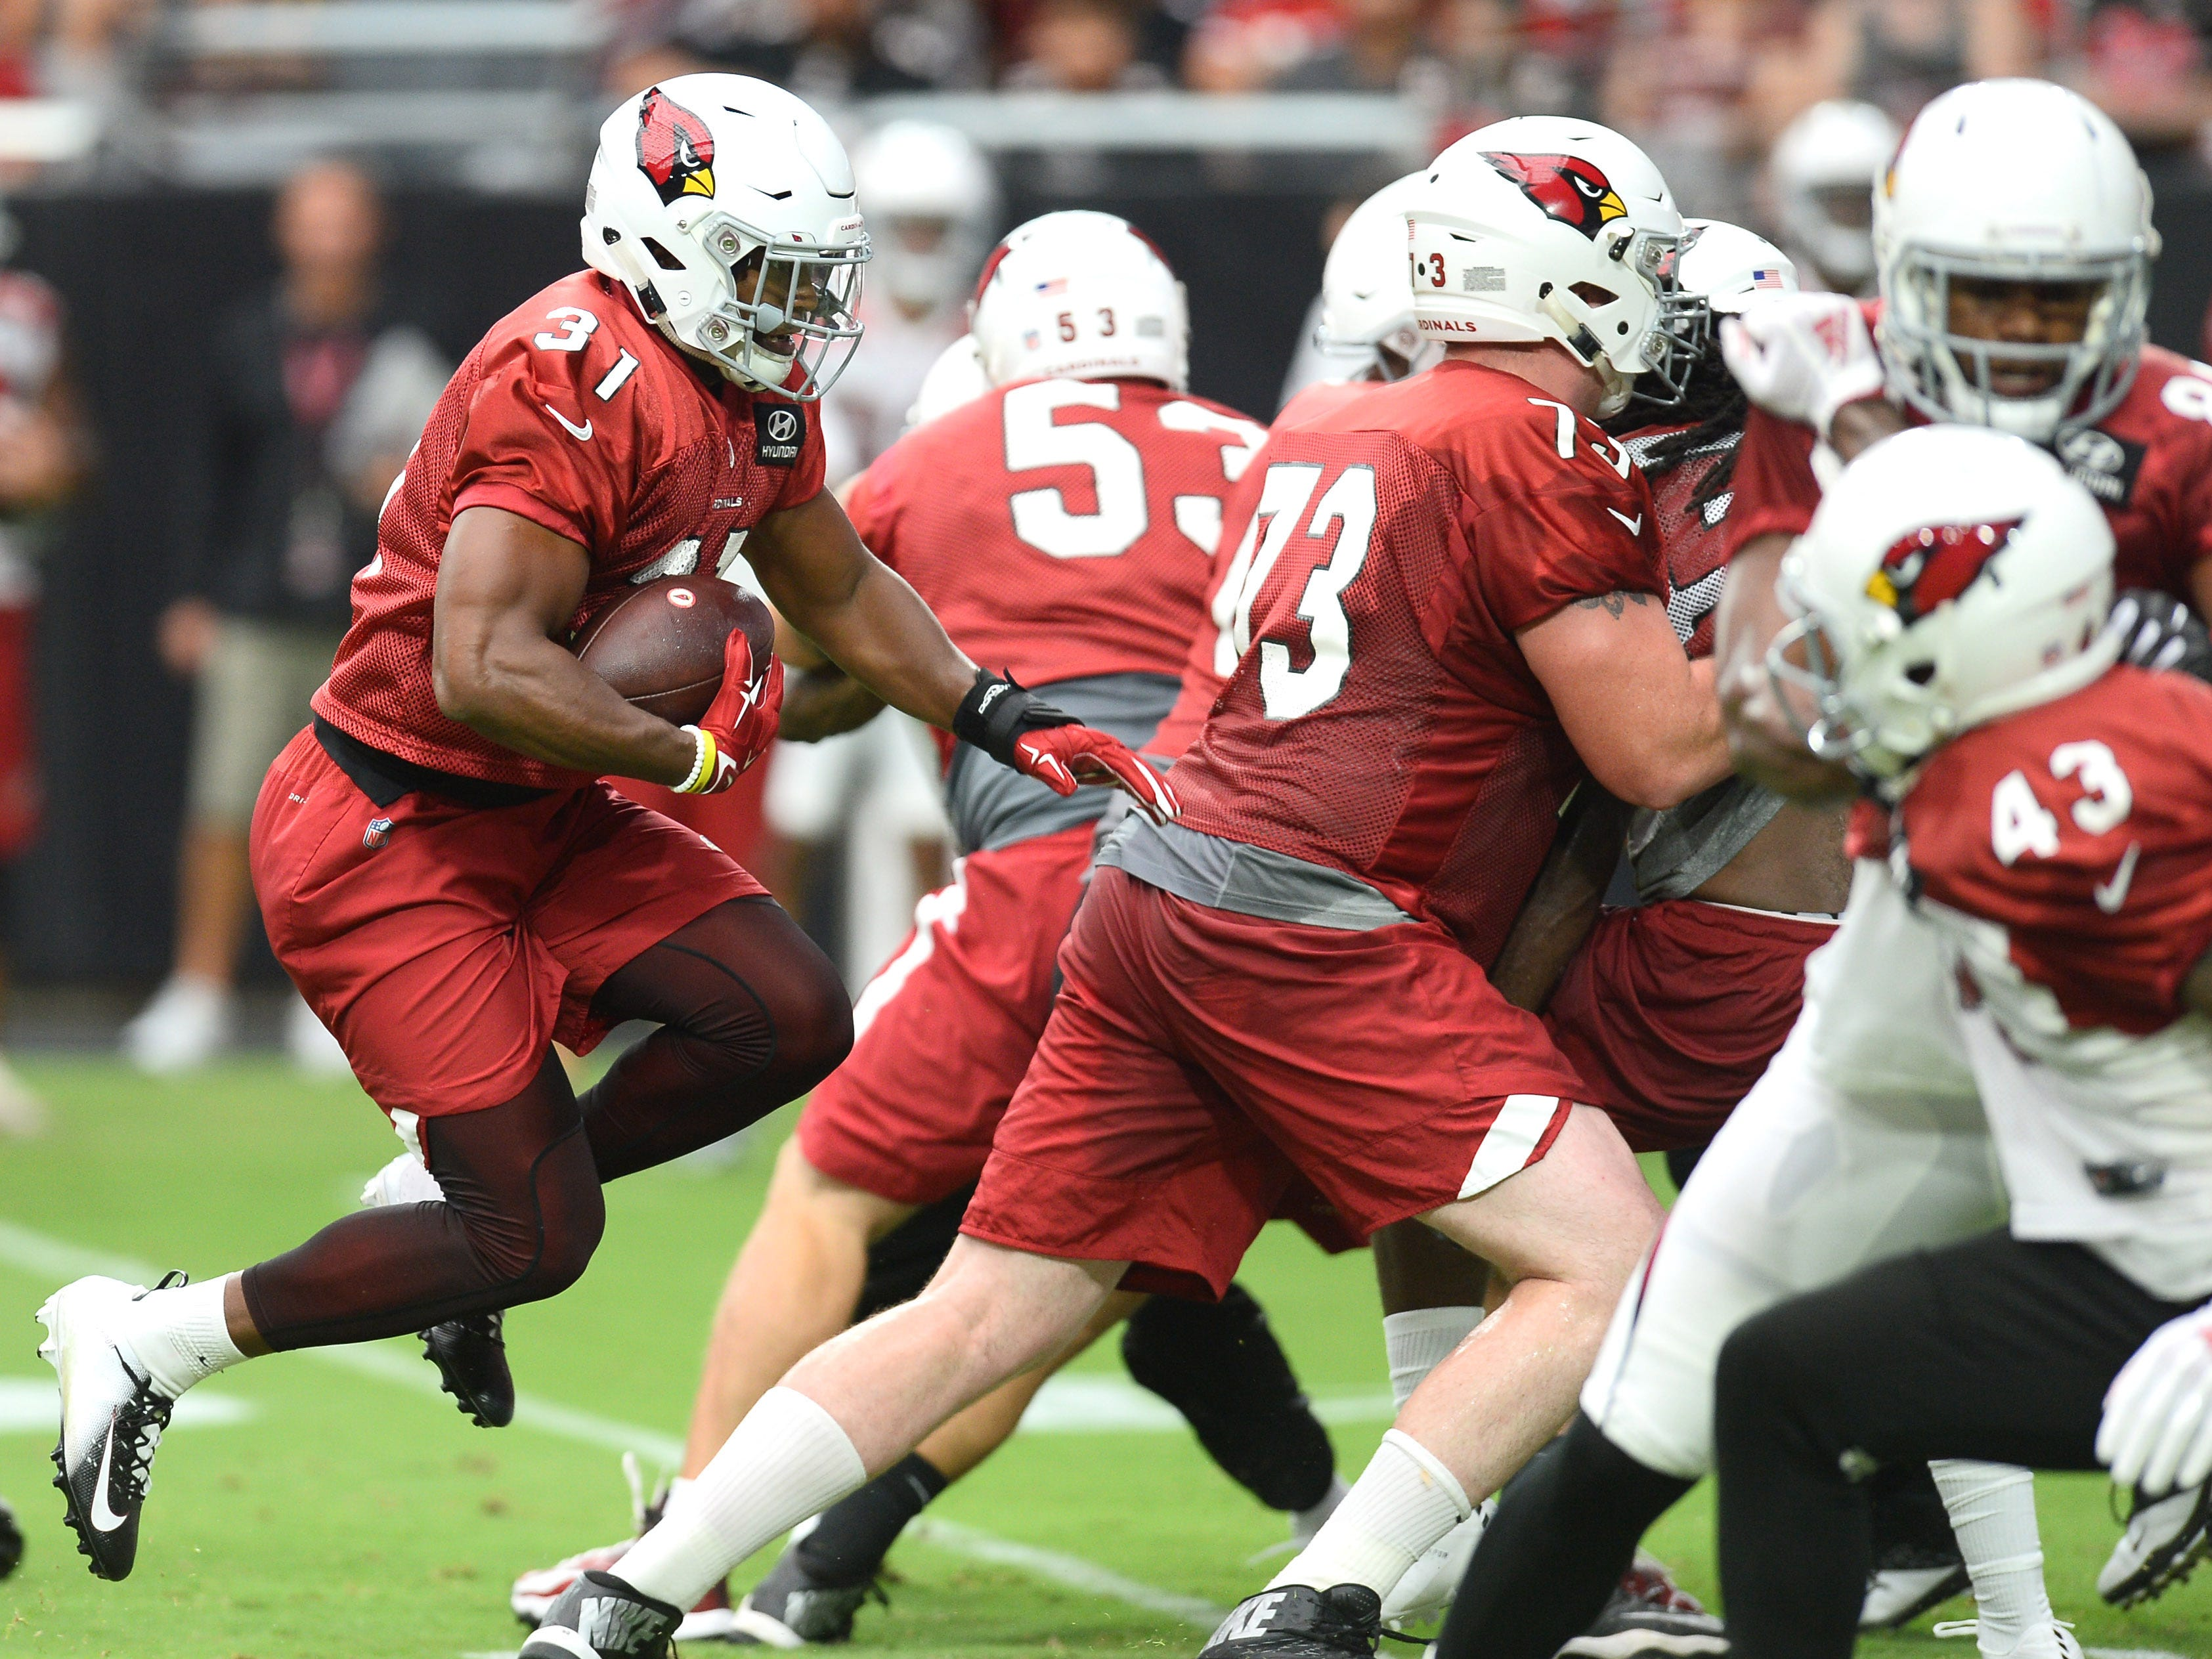 21. Cardinals (18): Why doesn't team that finished 8-8 in 2017 minus David Johnson or strong QB play for most of year get more respect? Keep an eye on 'em.